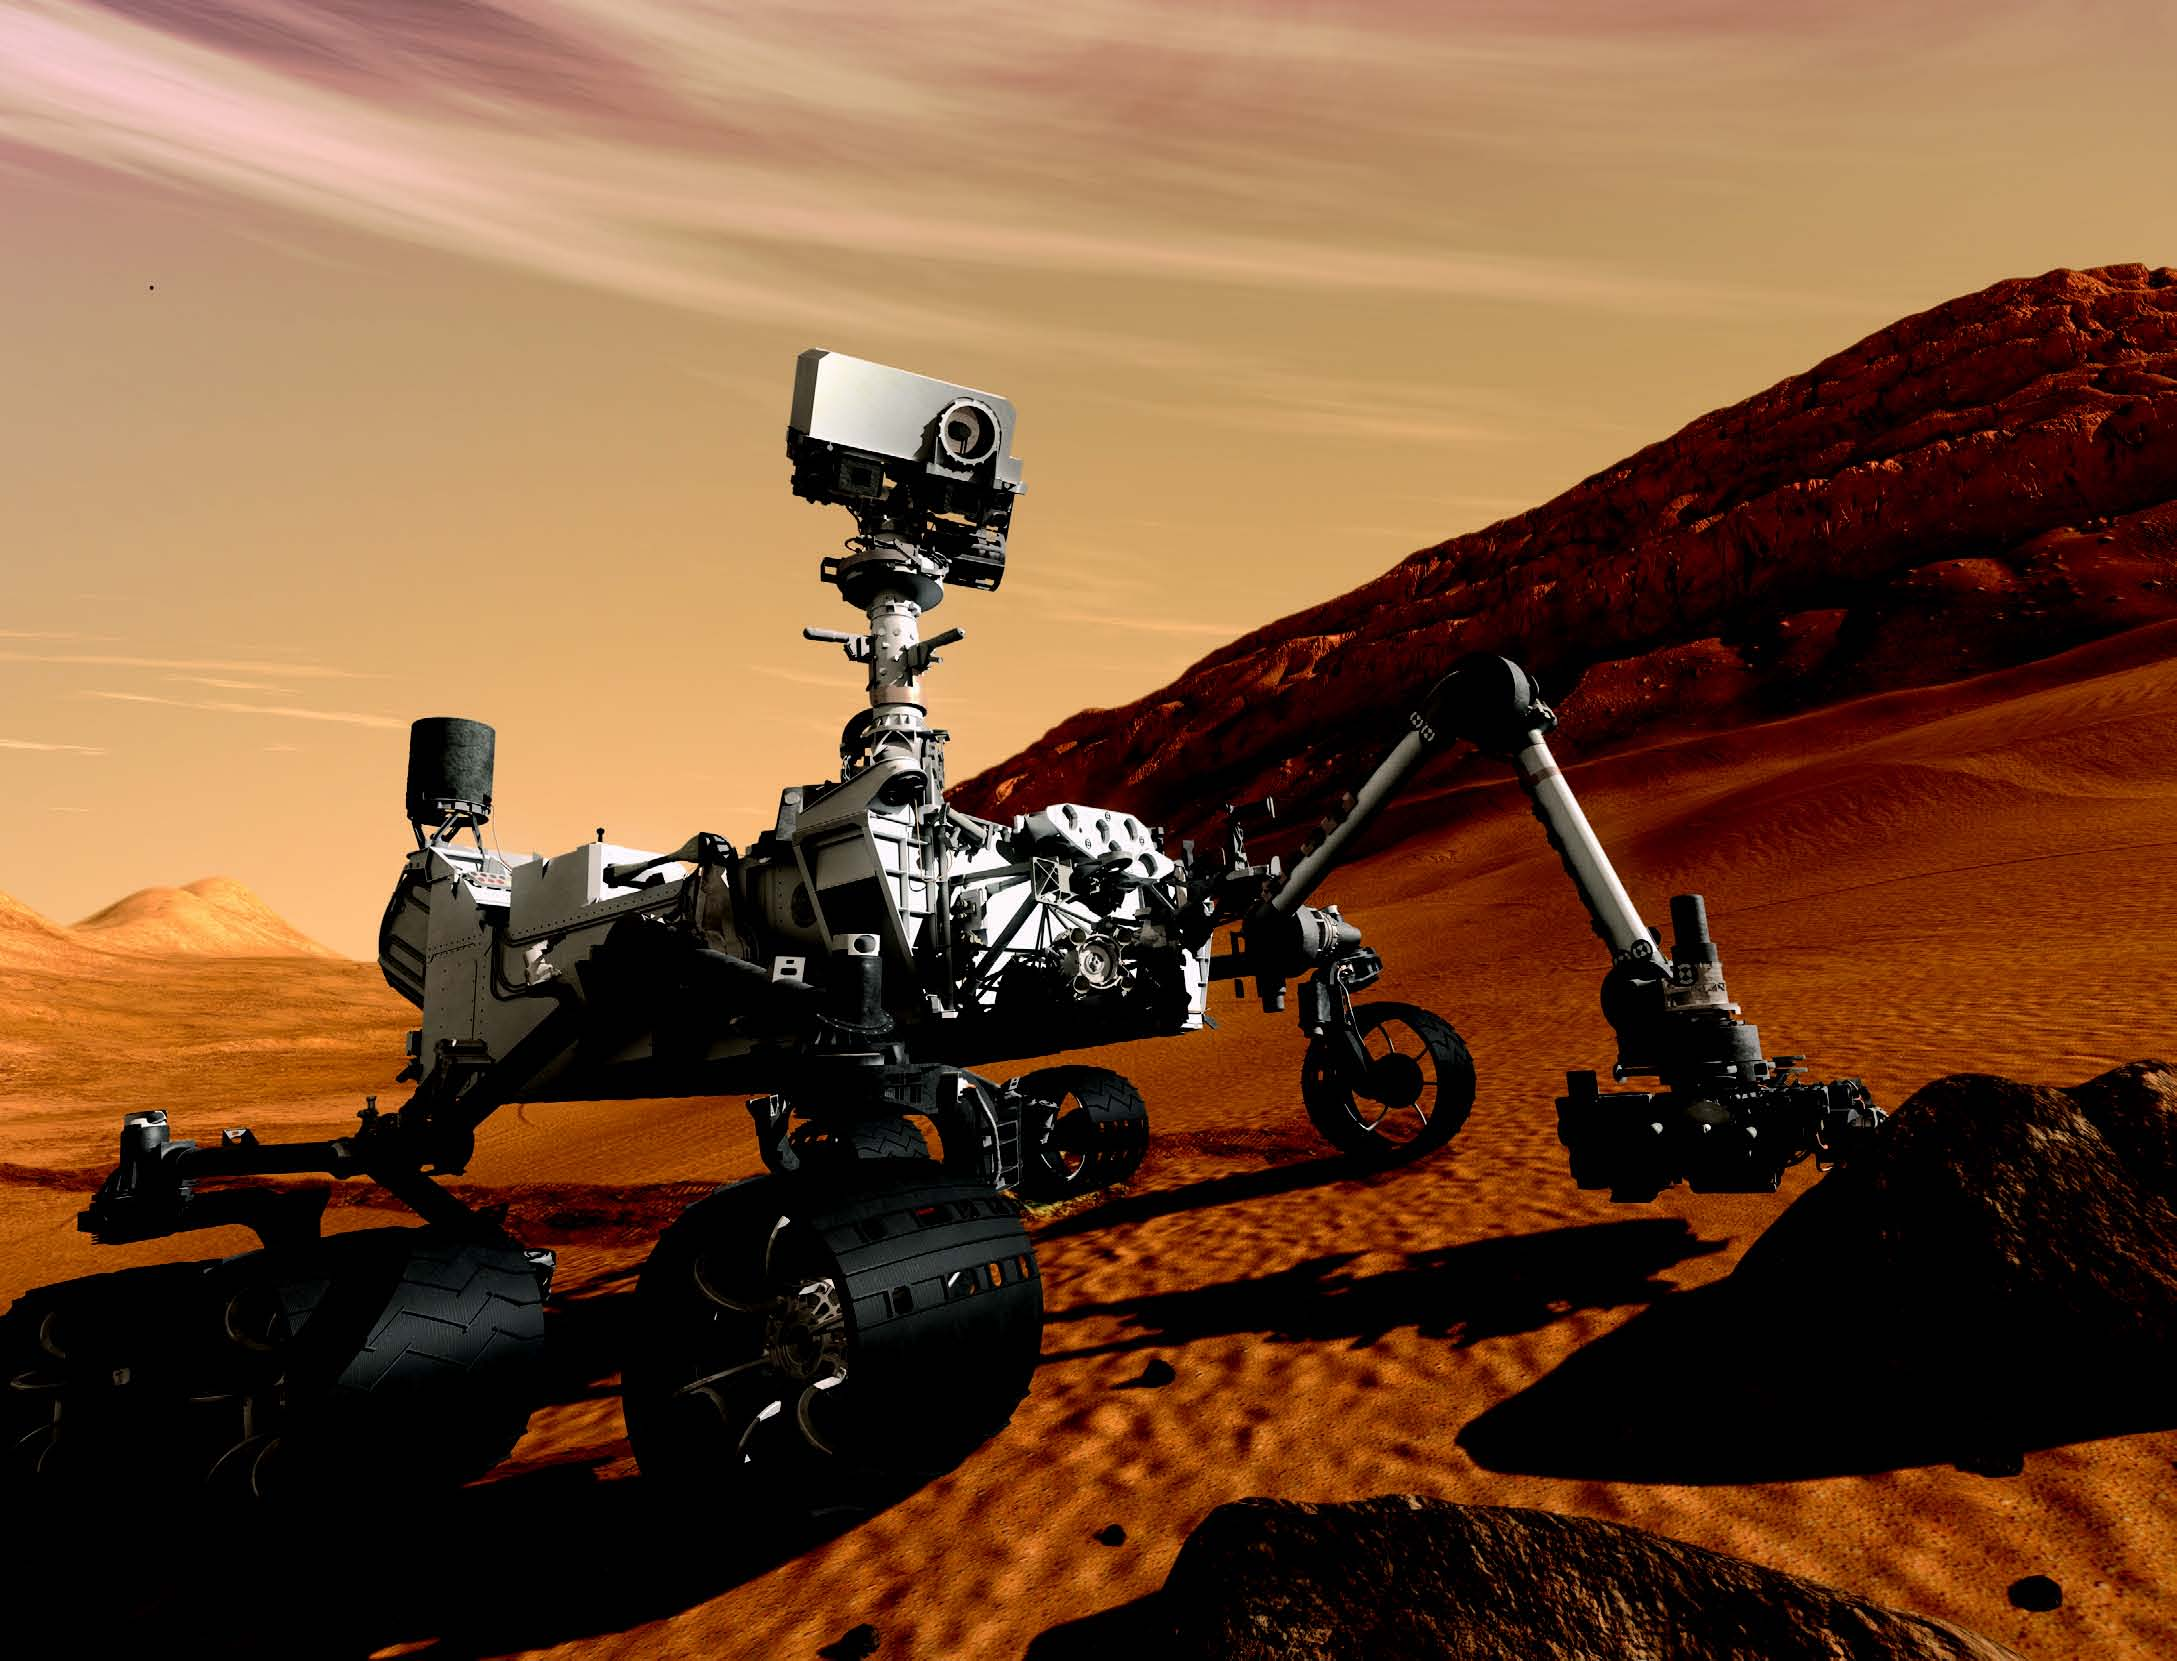 curiosity rover diagram 2007 chevy cobalt lt stereo wiring mars pics about space